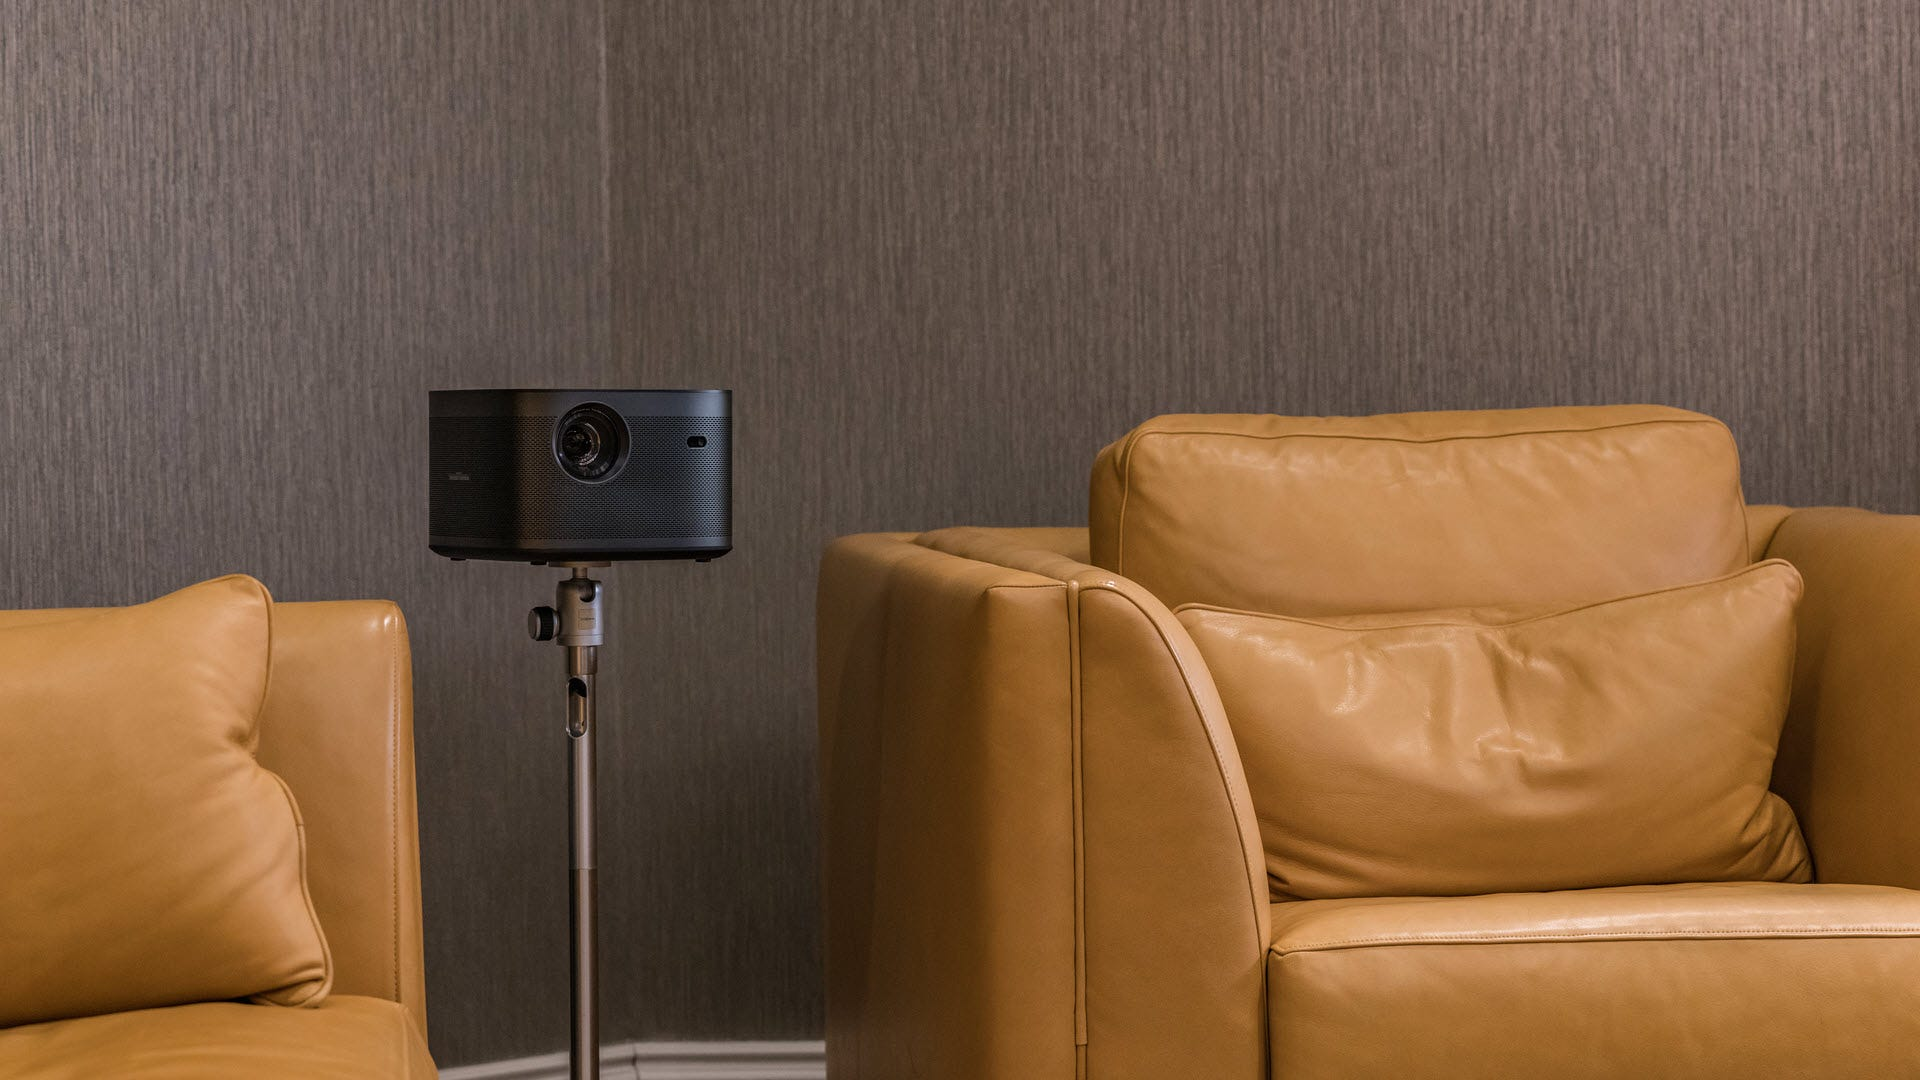 A projector mounted on a stand in a living room.